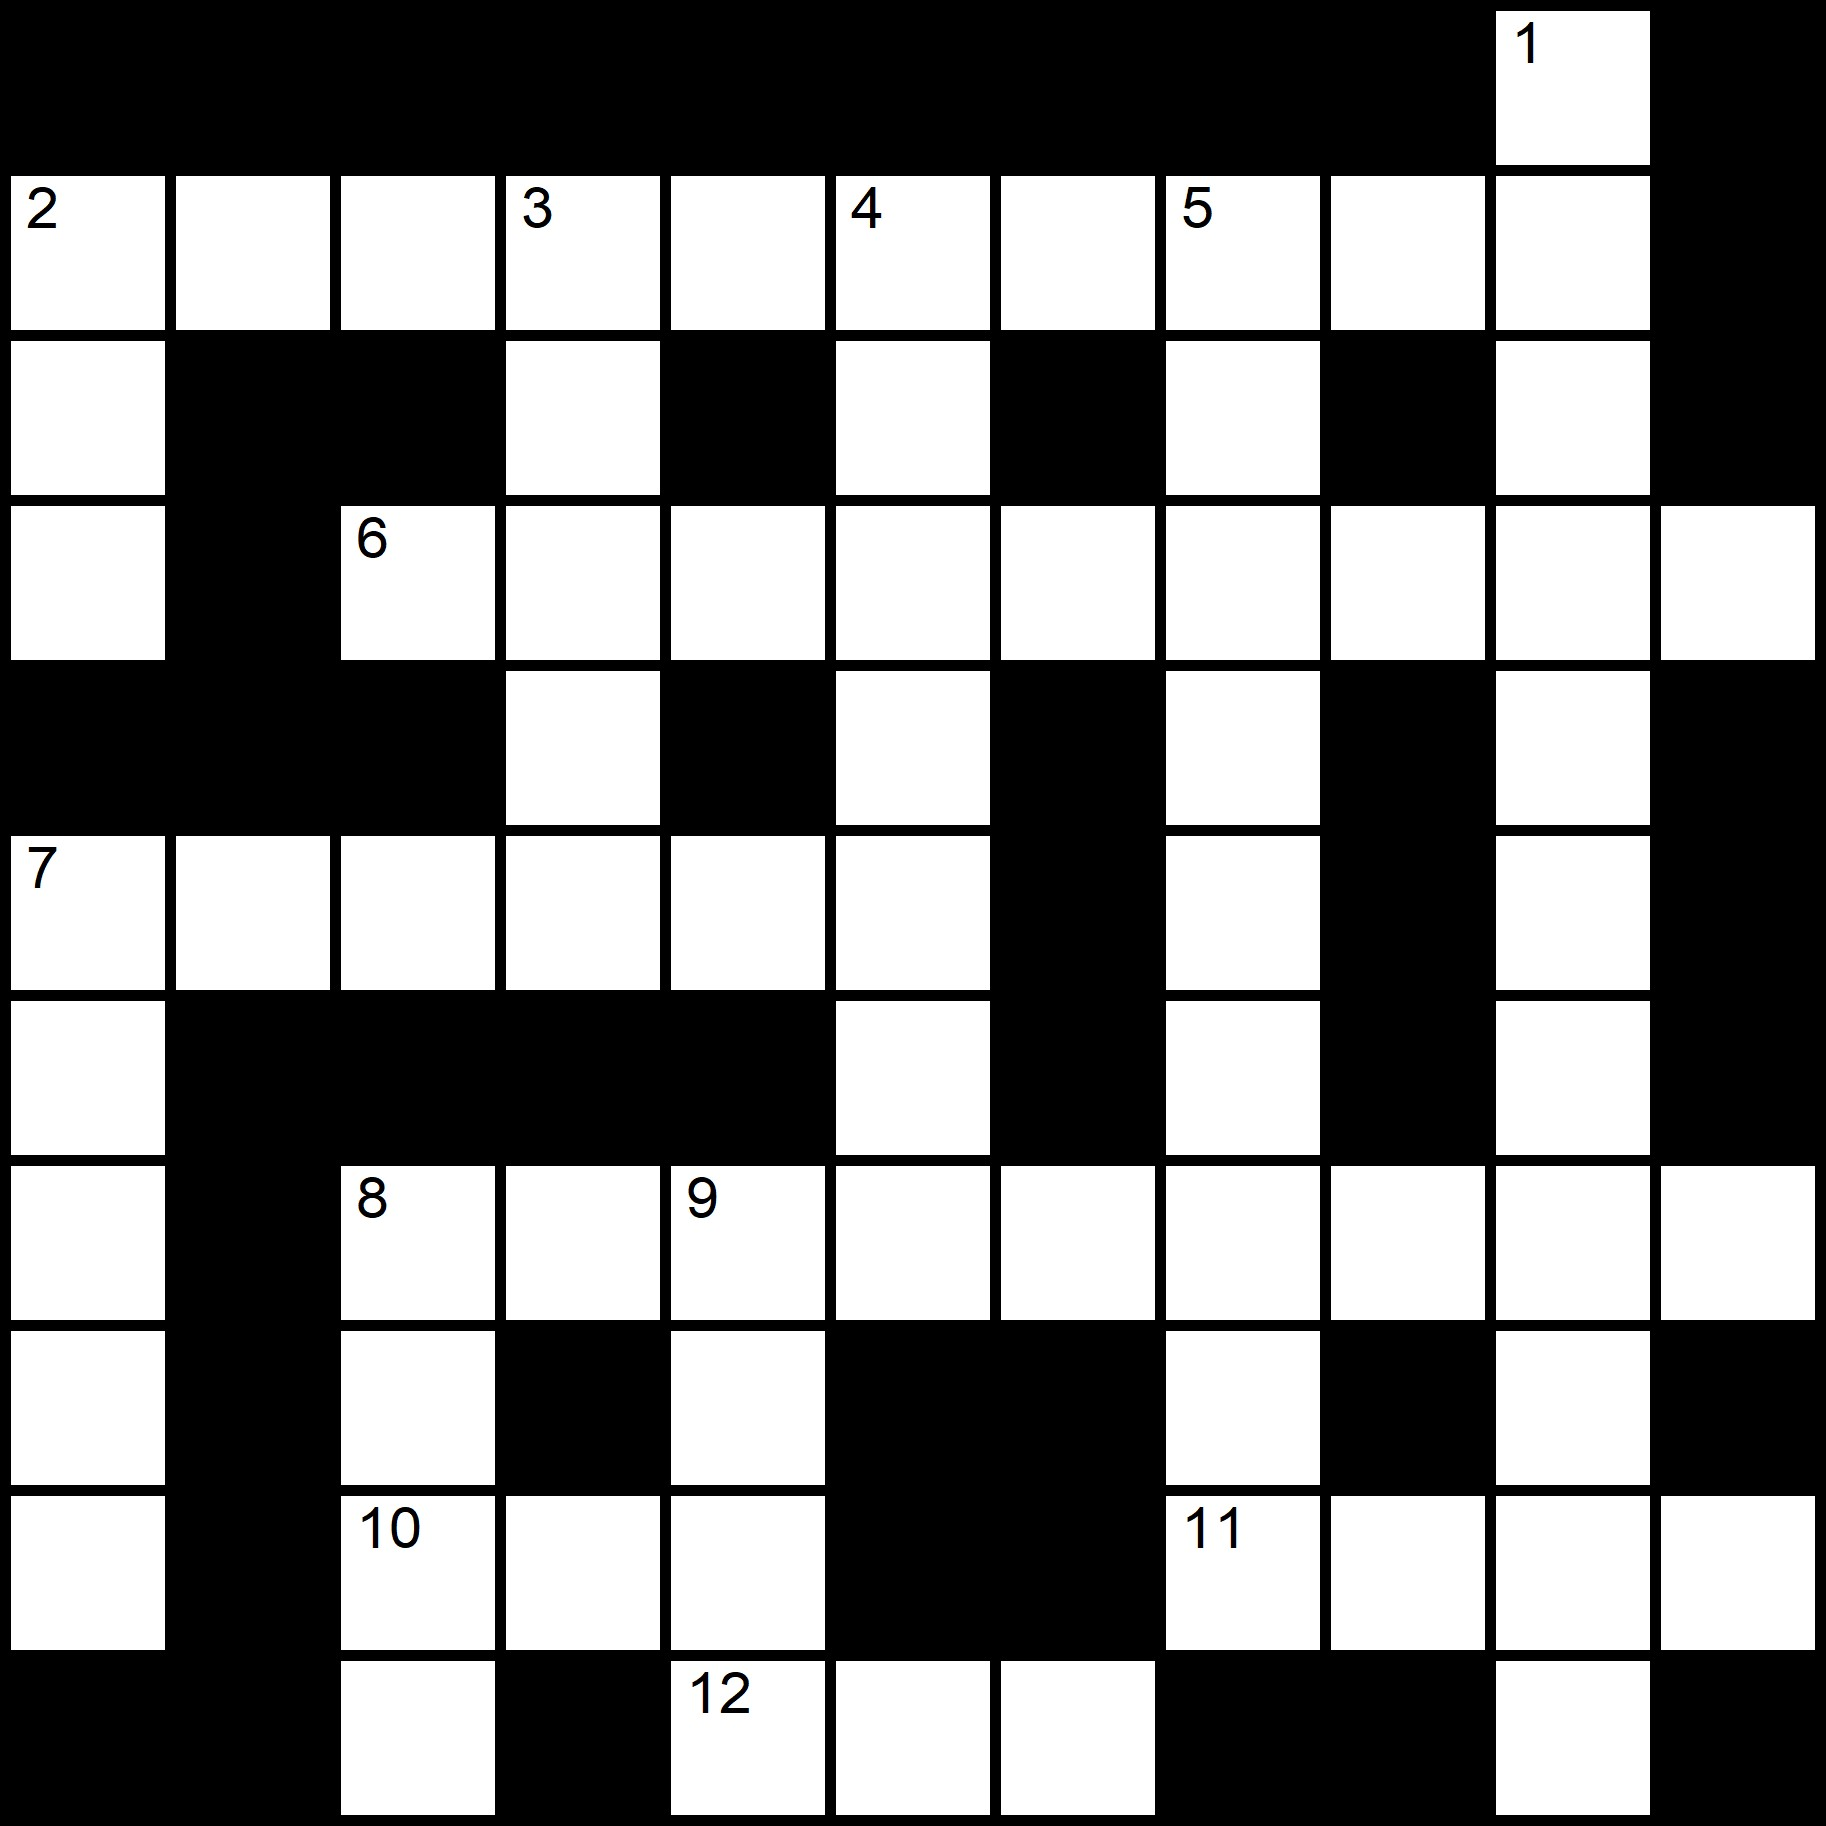 Beginner Crossword Puzzles Printable - Amsterdam - Crossword number One